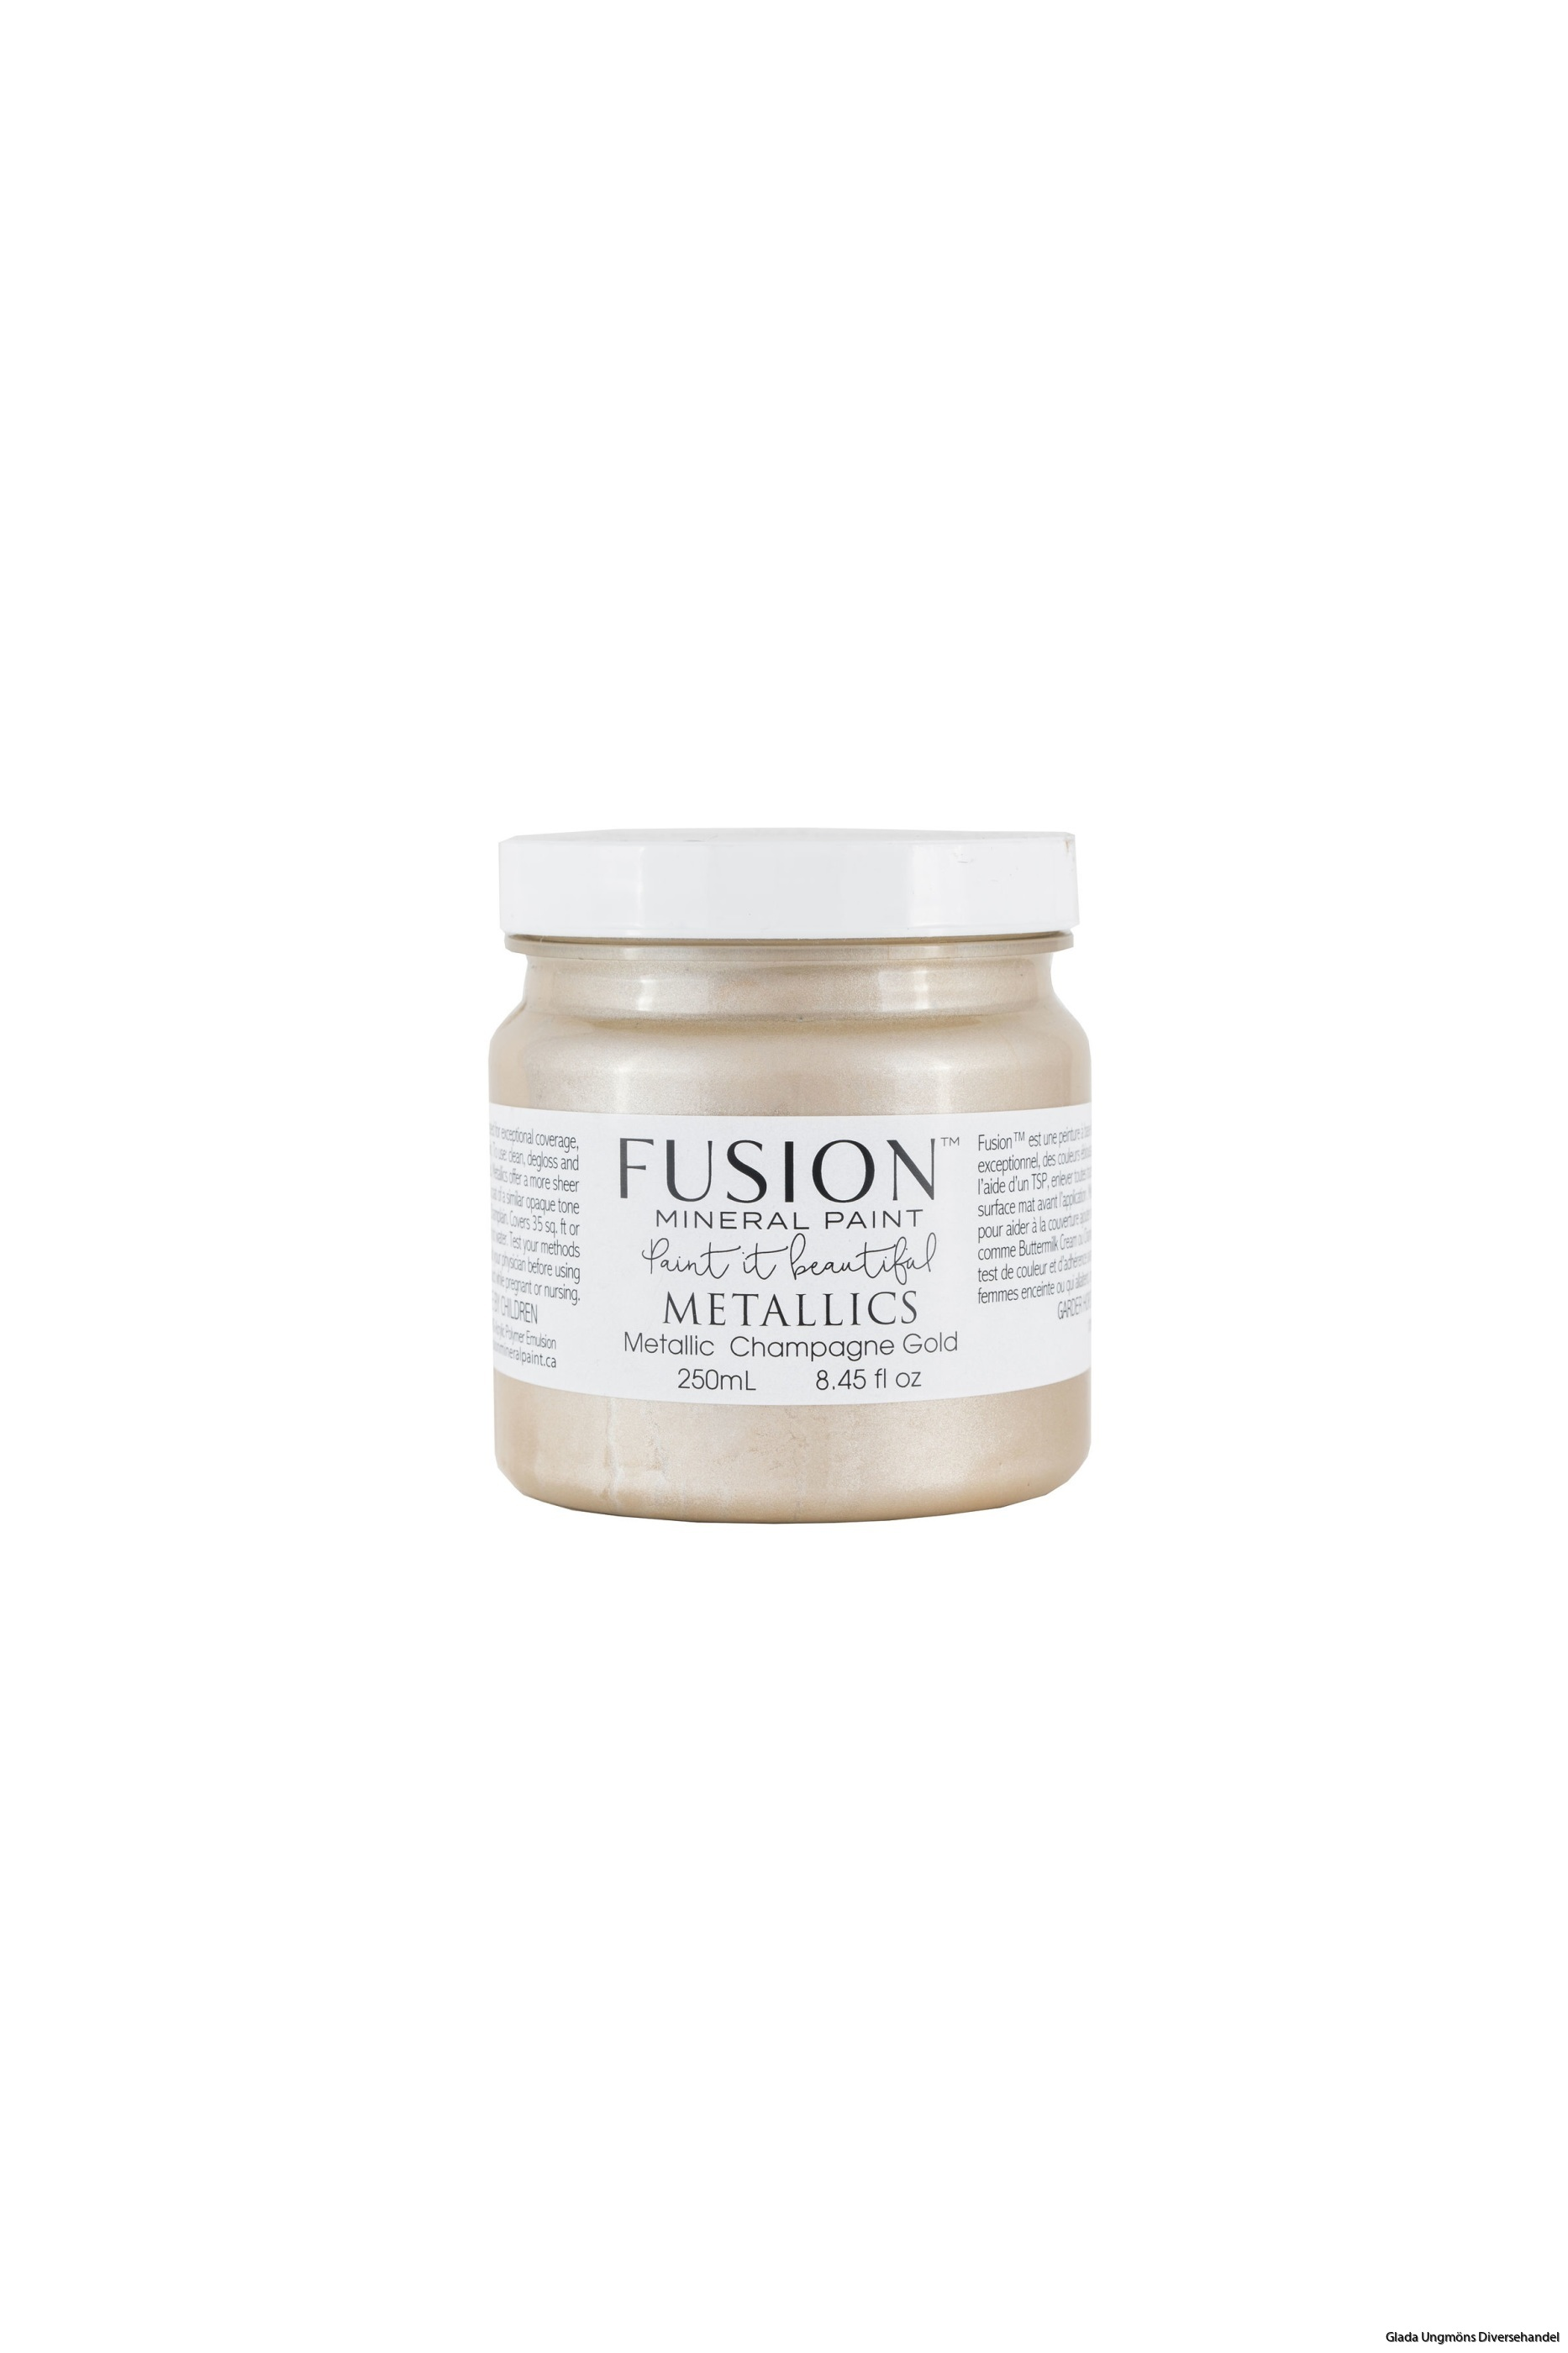 fusion_mineral_paint-metallic-champagnegold-250ml